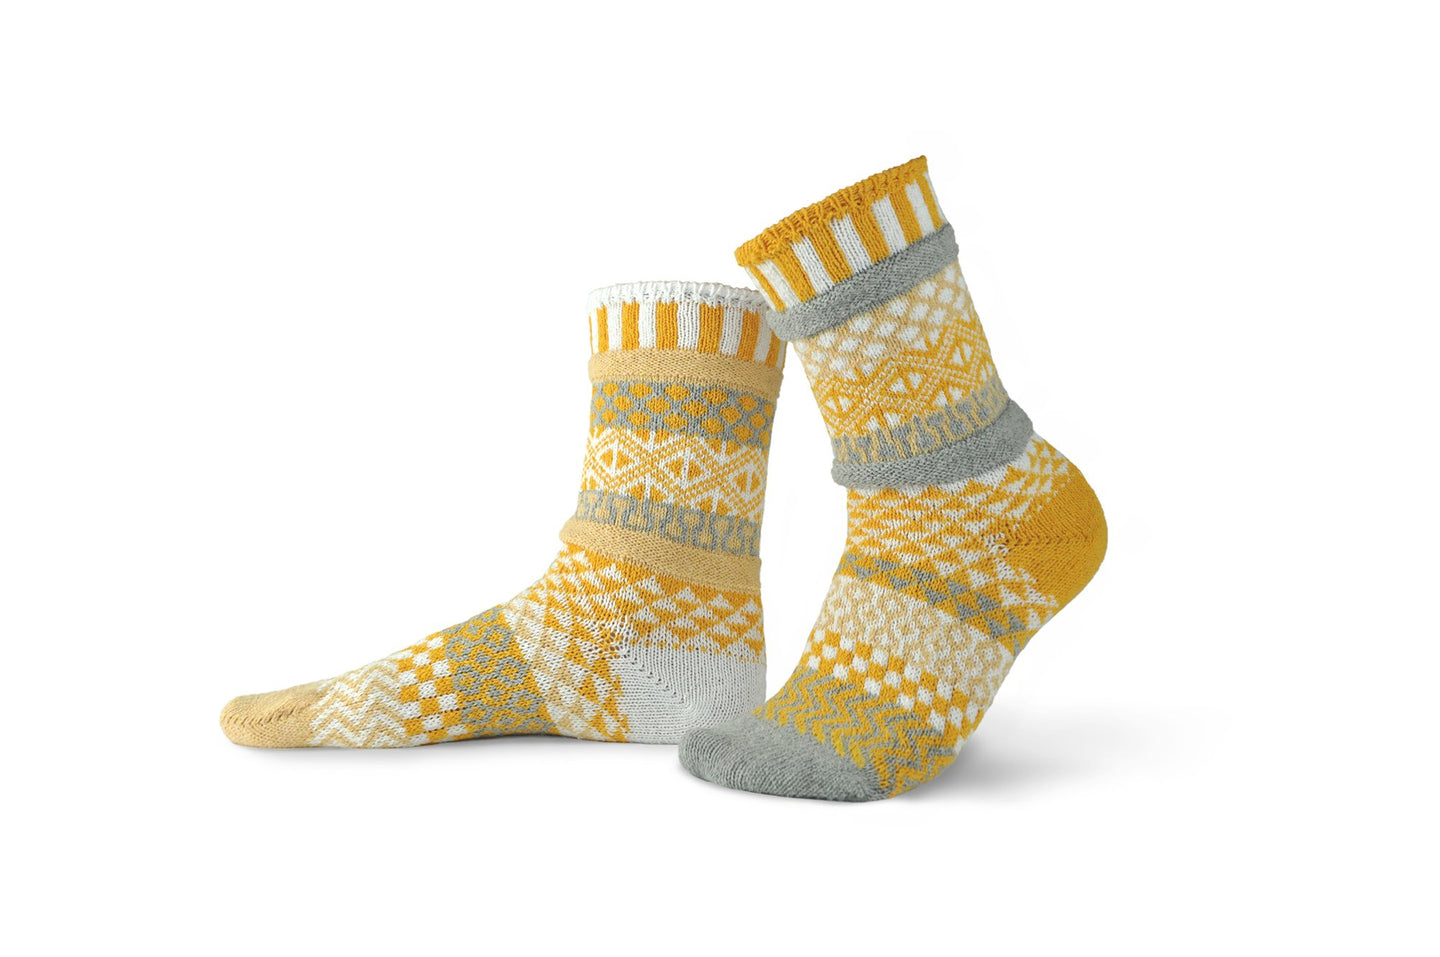 Solmate socks made in the USA from recycled cotton, colourway Northern Sun.